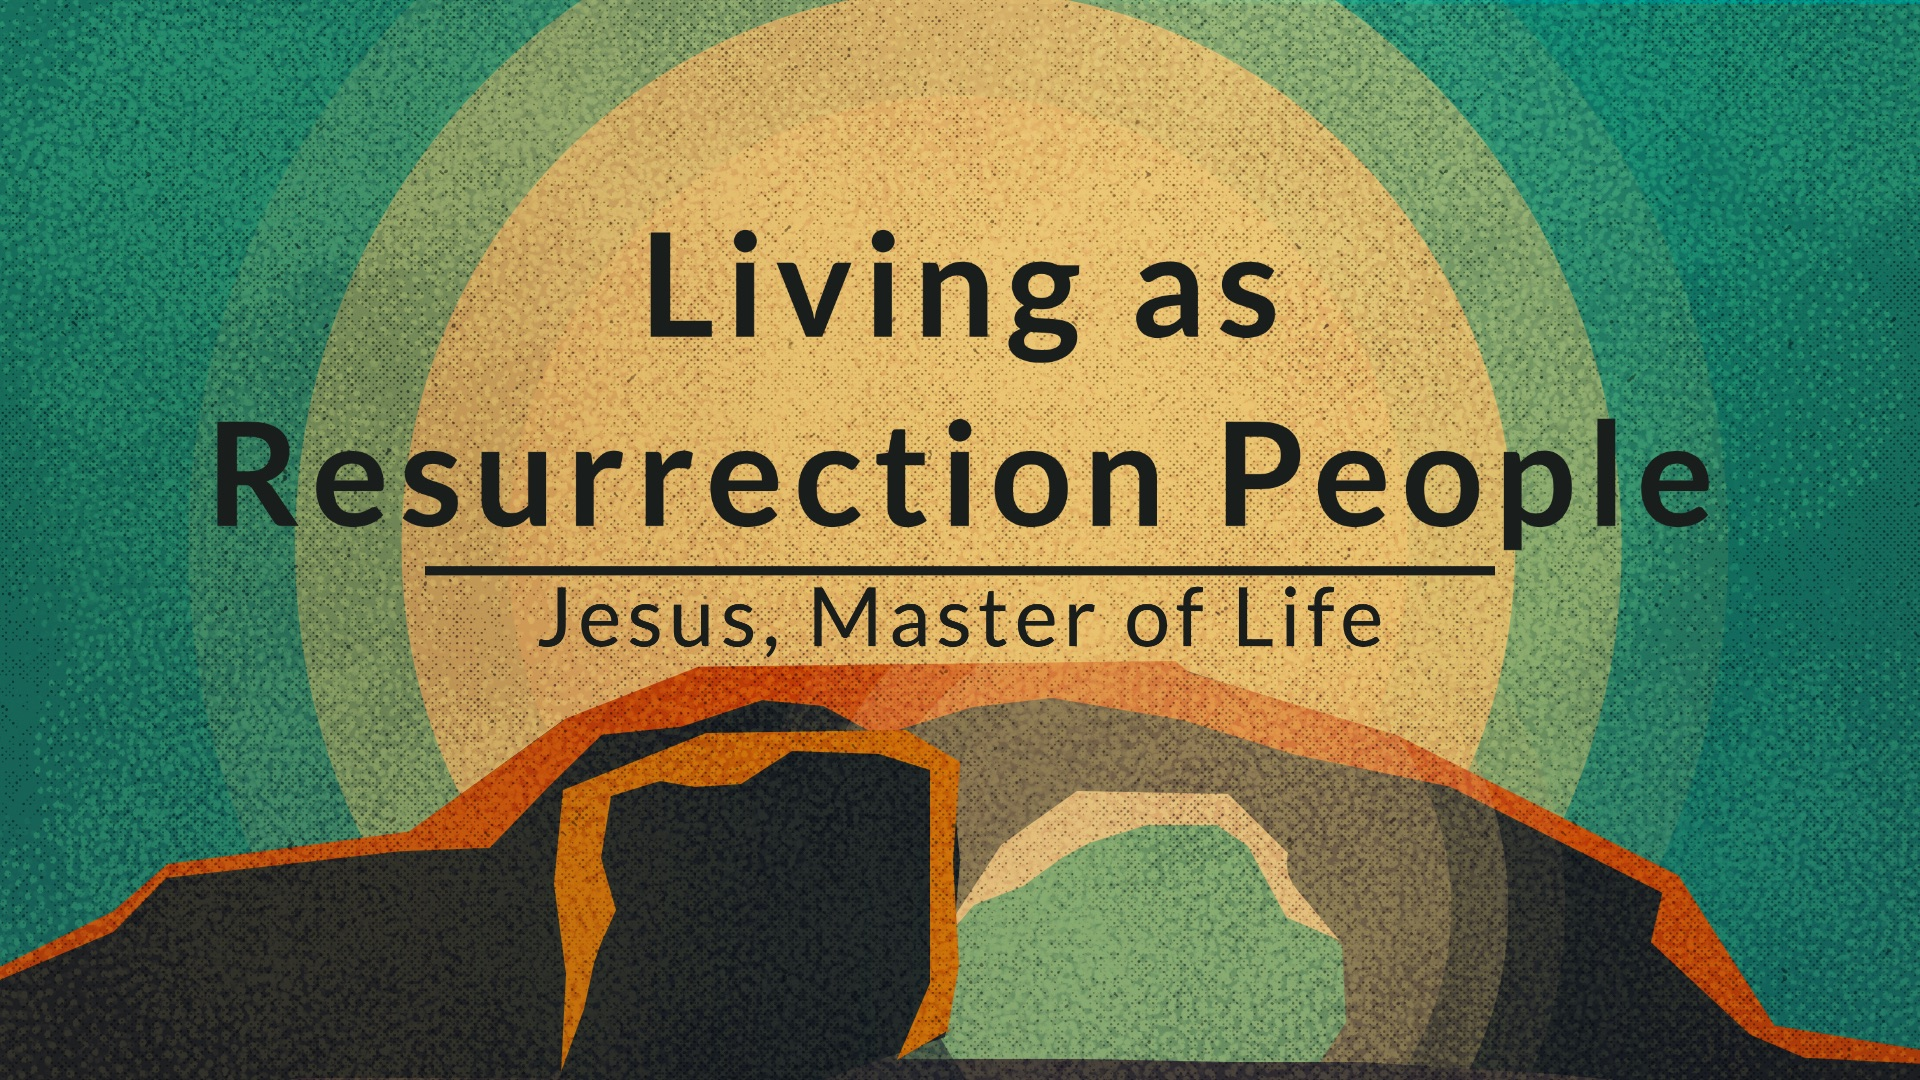 Living as Resurrection People: Jesus, Master of Life